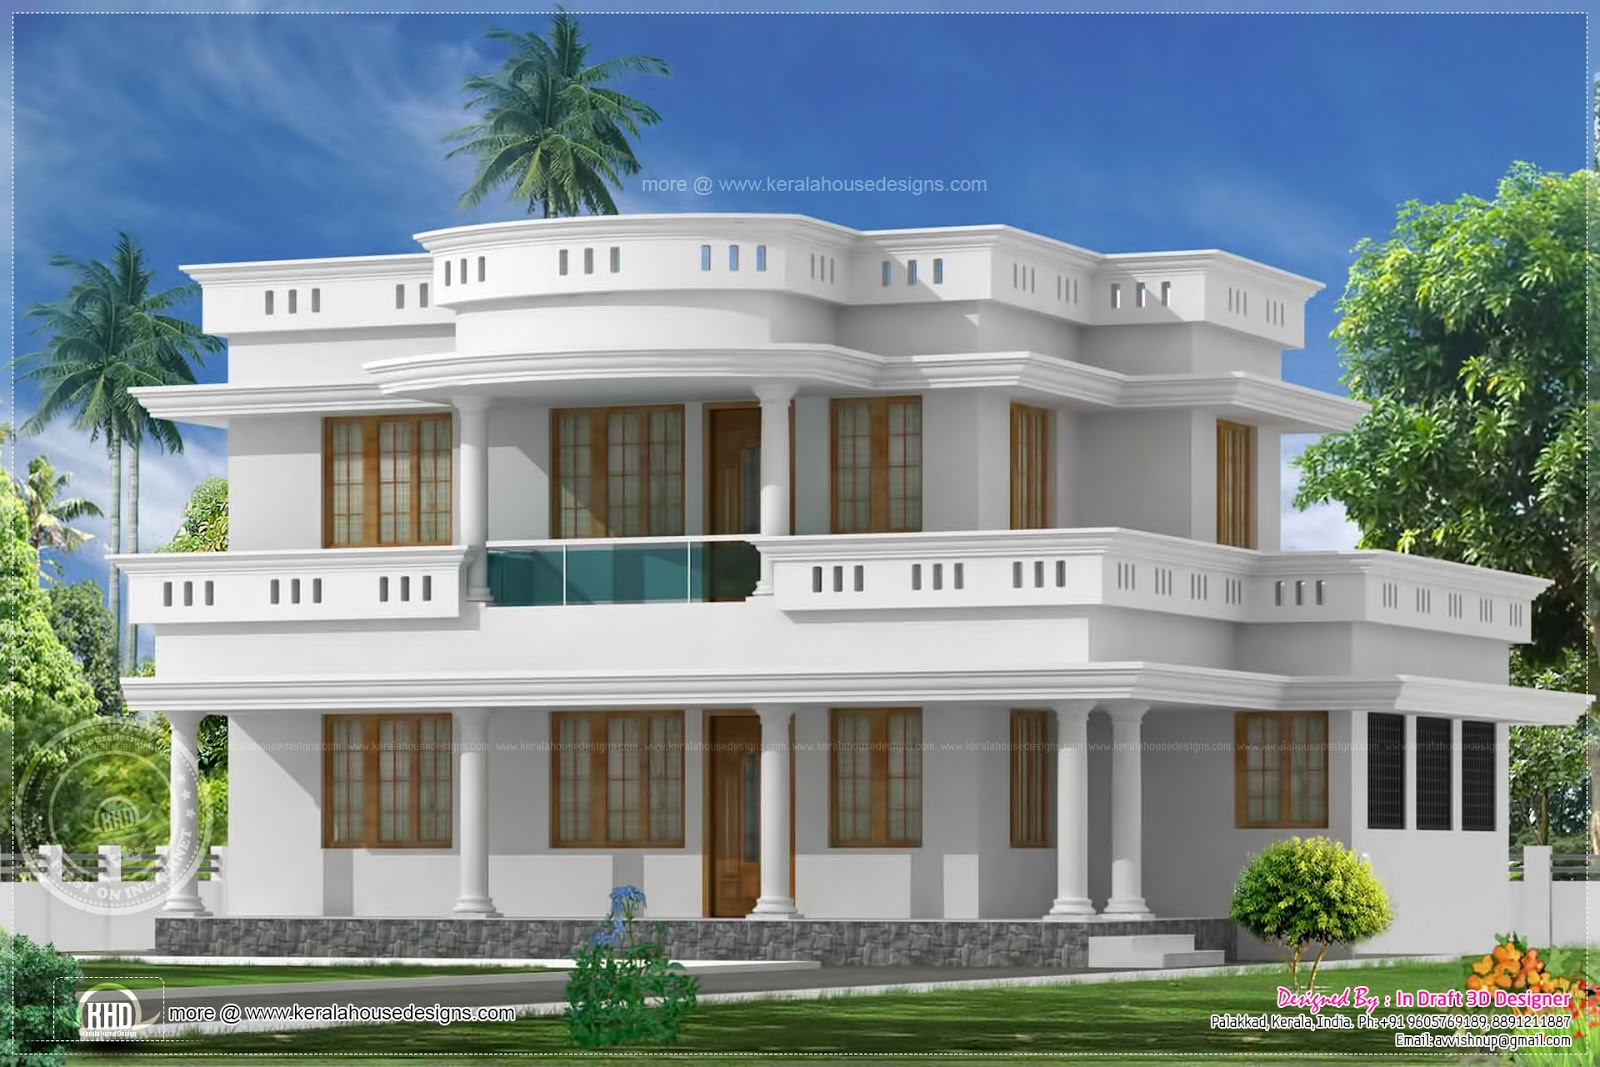 2192 square feet villa exterior design house design plans for External design house